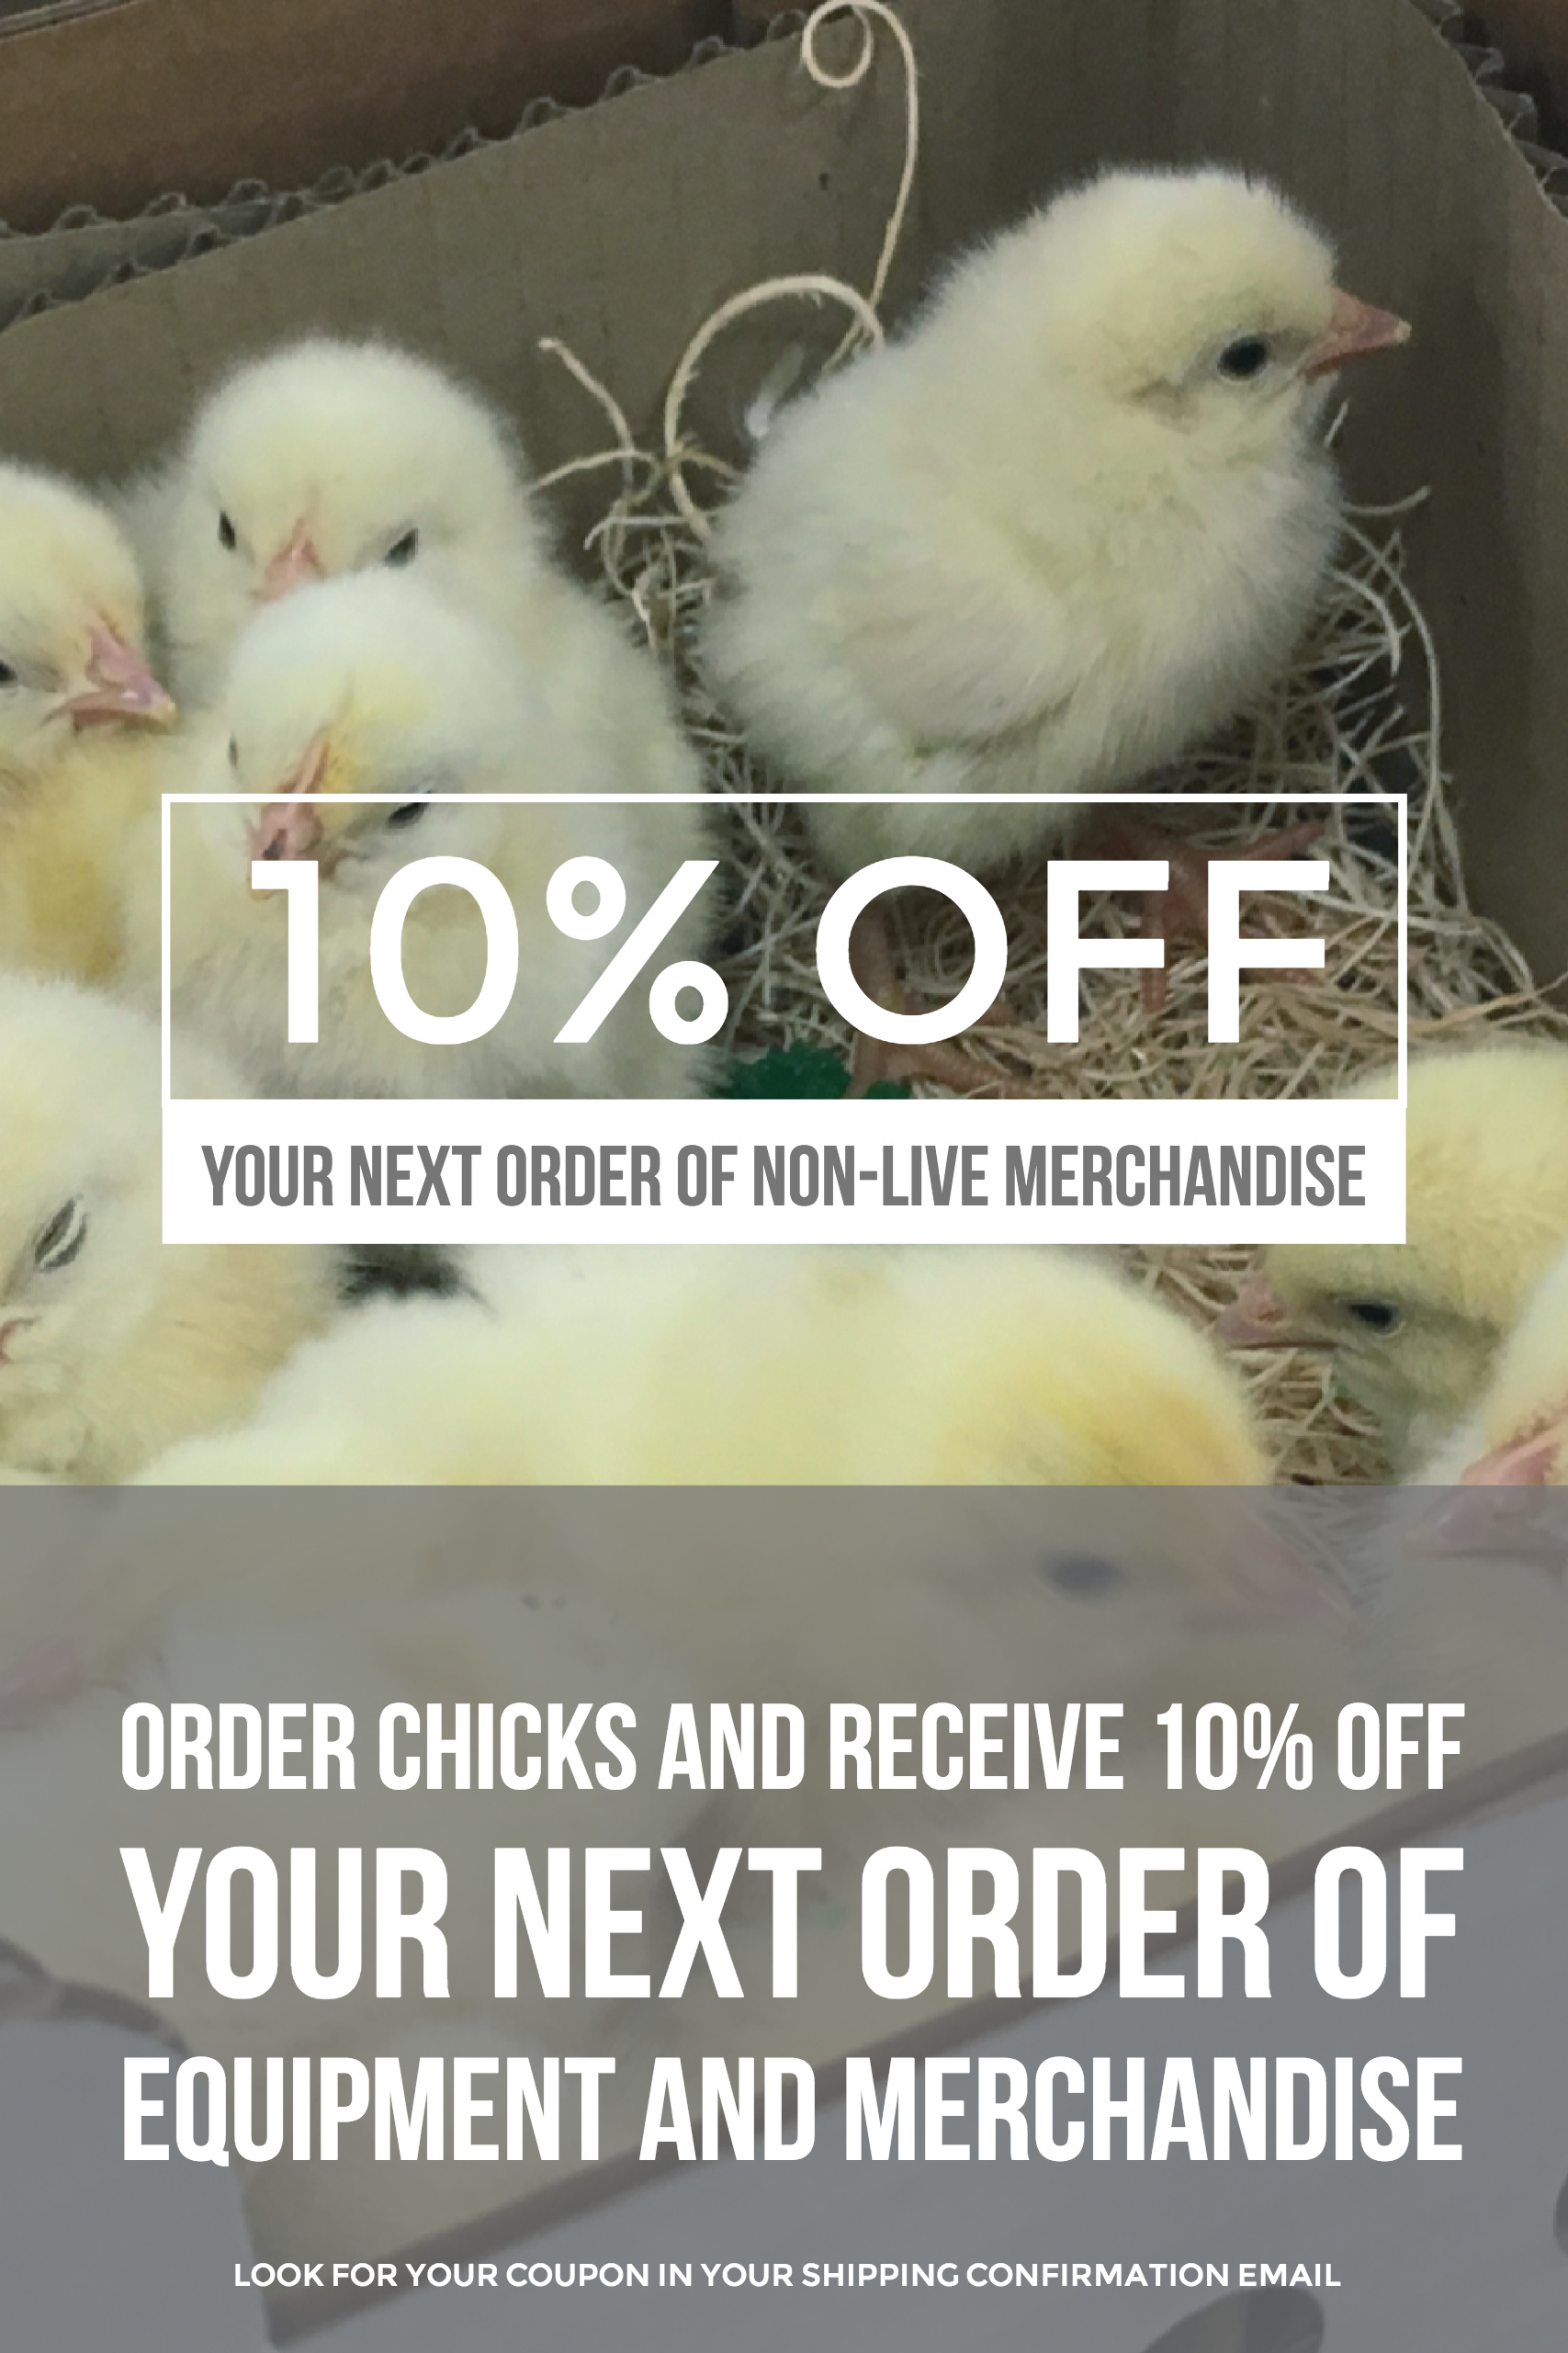 SAVE 10 PERCENT on your next order of poultry merchandise from McMurray Hatchery when you purchase baby chicks.